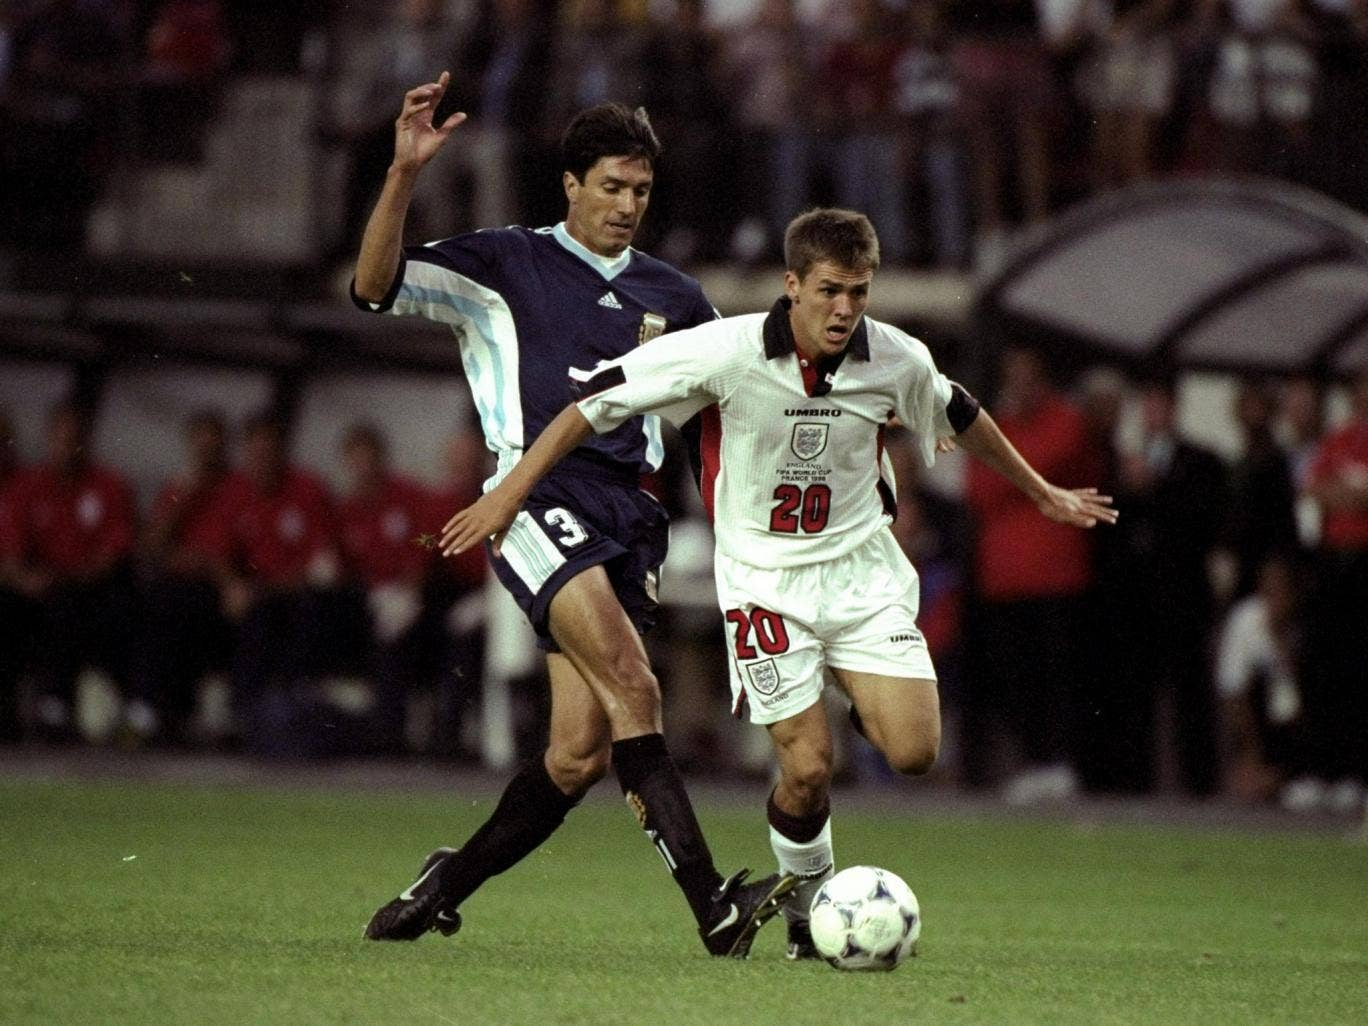 Michael Owen's goal against Argentina in 1998 has gone down as one of England's greatest ever World Cup goals